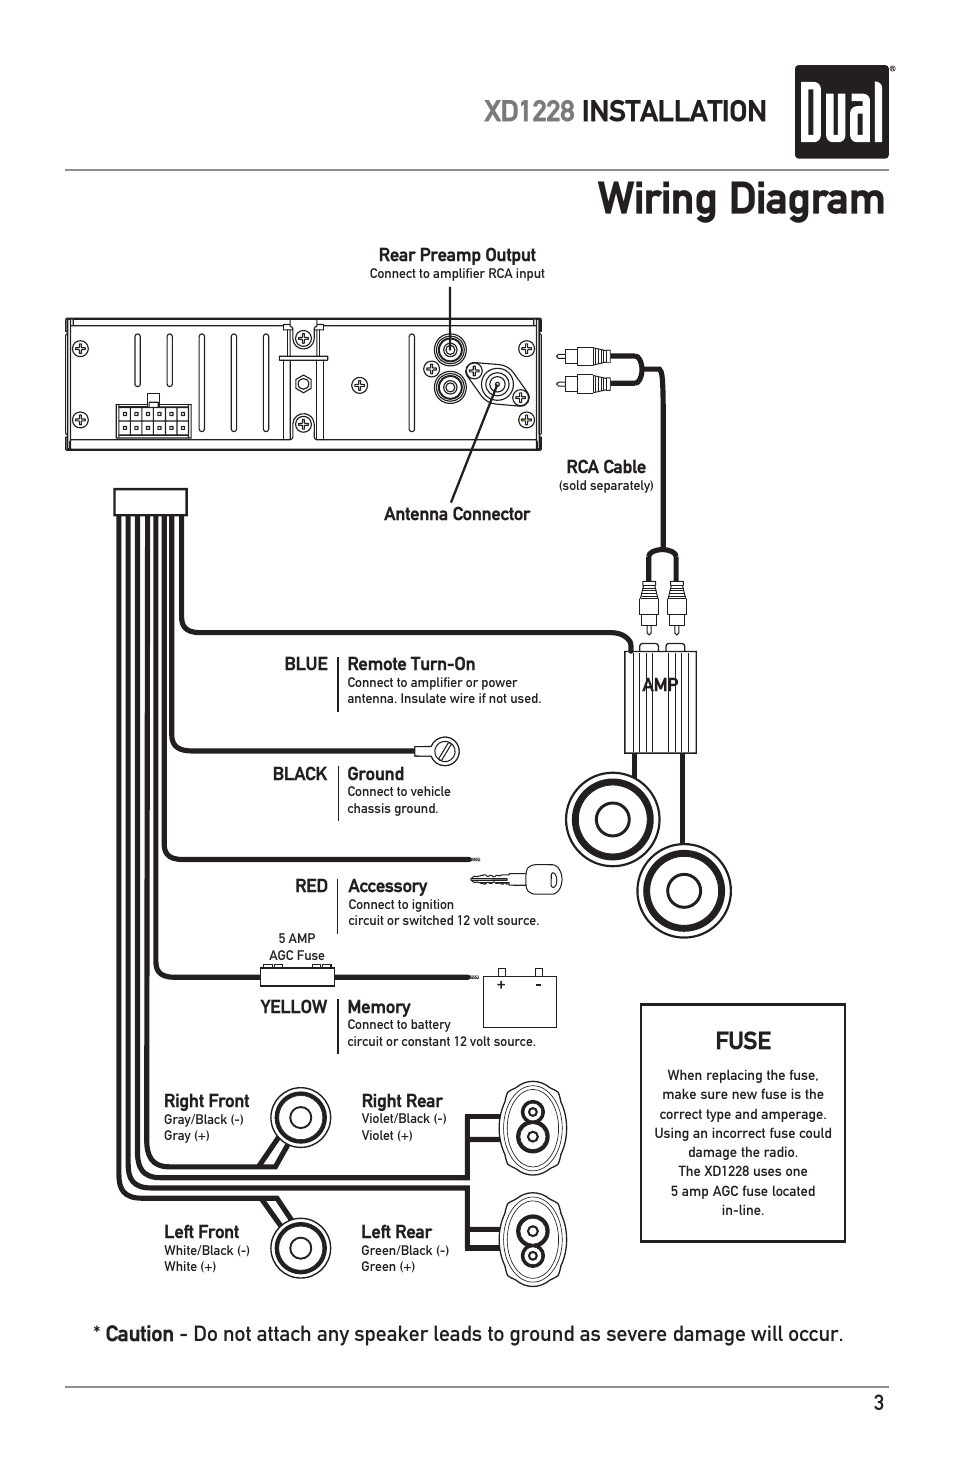 dual xd1228 page3 dual radio wiring diagram dual wiring diagrams instruction dual dc426bt wiring diagram at gsmportal.co